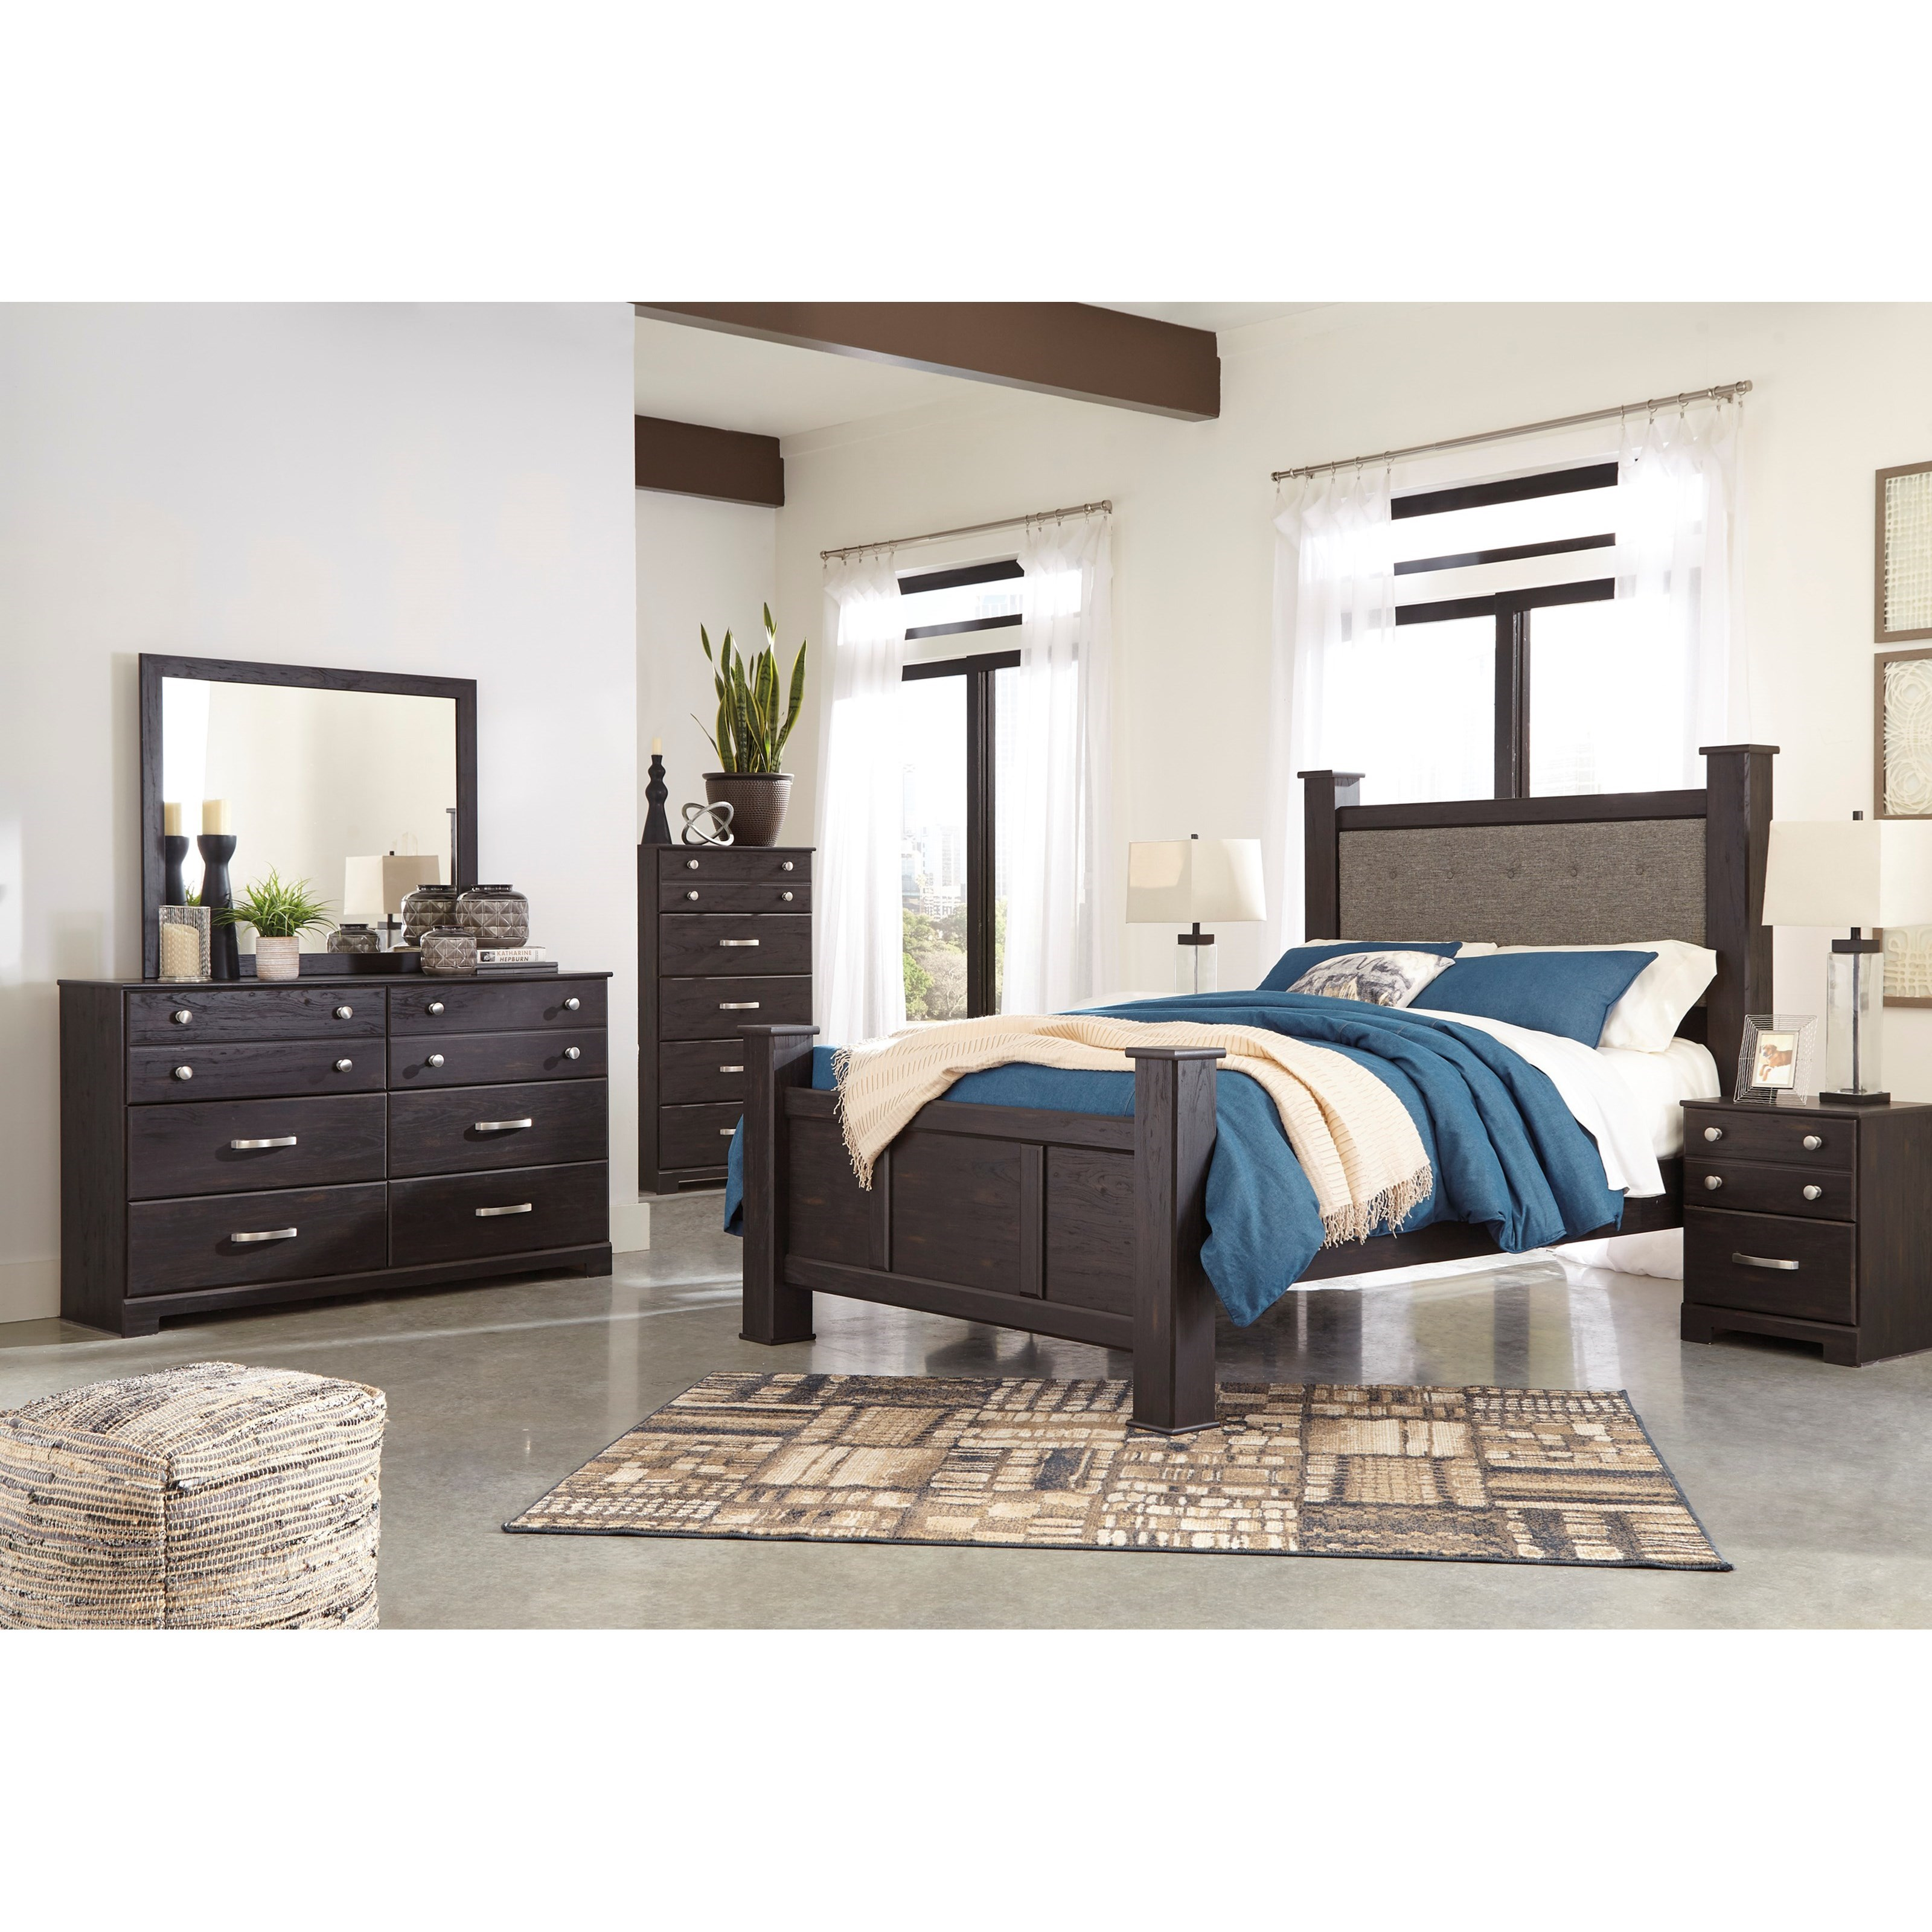 Reylow Queen Bedroom Group by Signature Design by Ashley at Zak's Warehouse Clearance Center